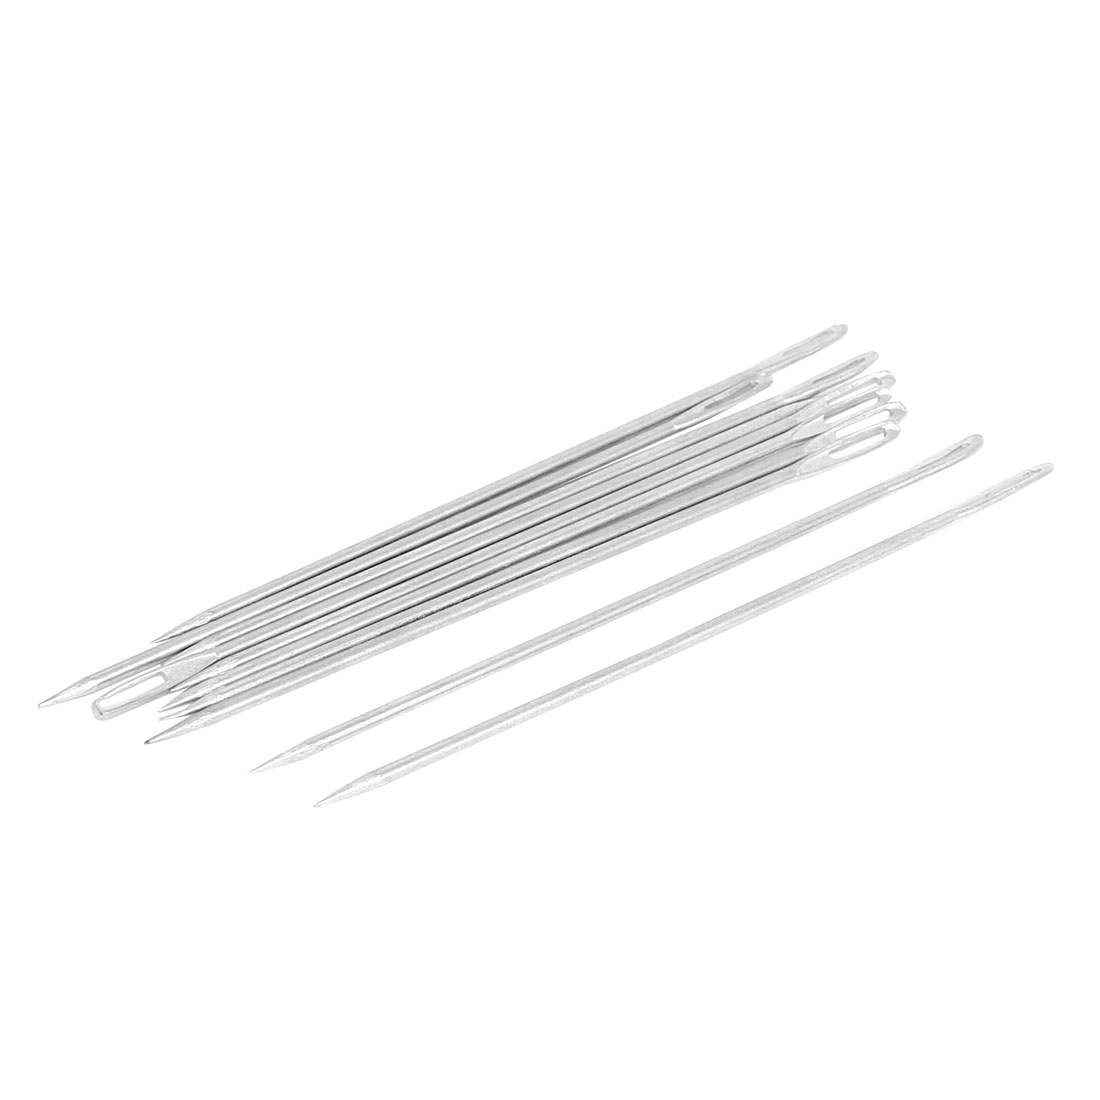 Silver Tone Metal Bag Packing Straight Tip Stitching Needles 12cm Length 10pcs